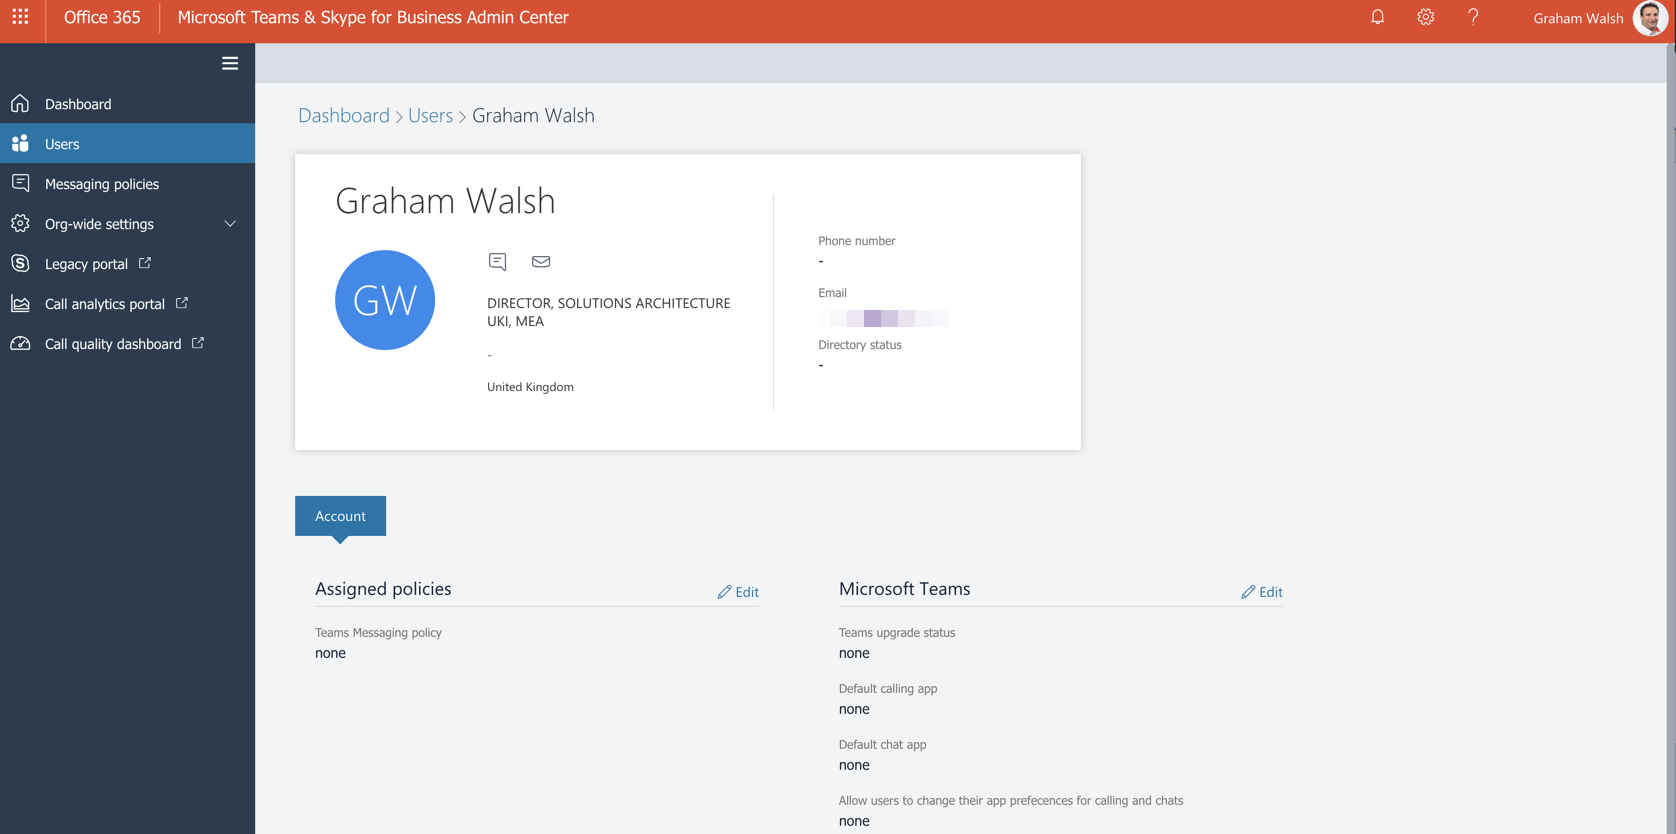 New Microsoft Teams & Skype for Business Admin Center